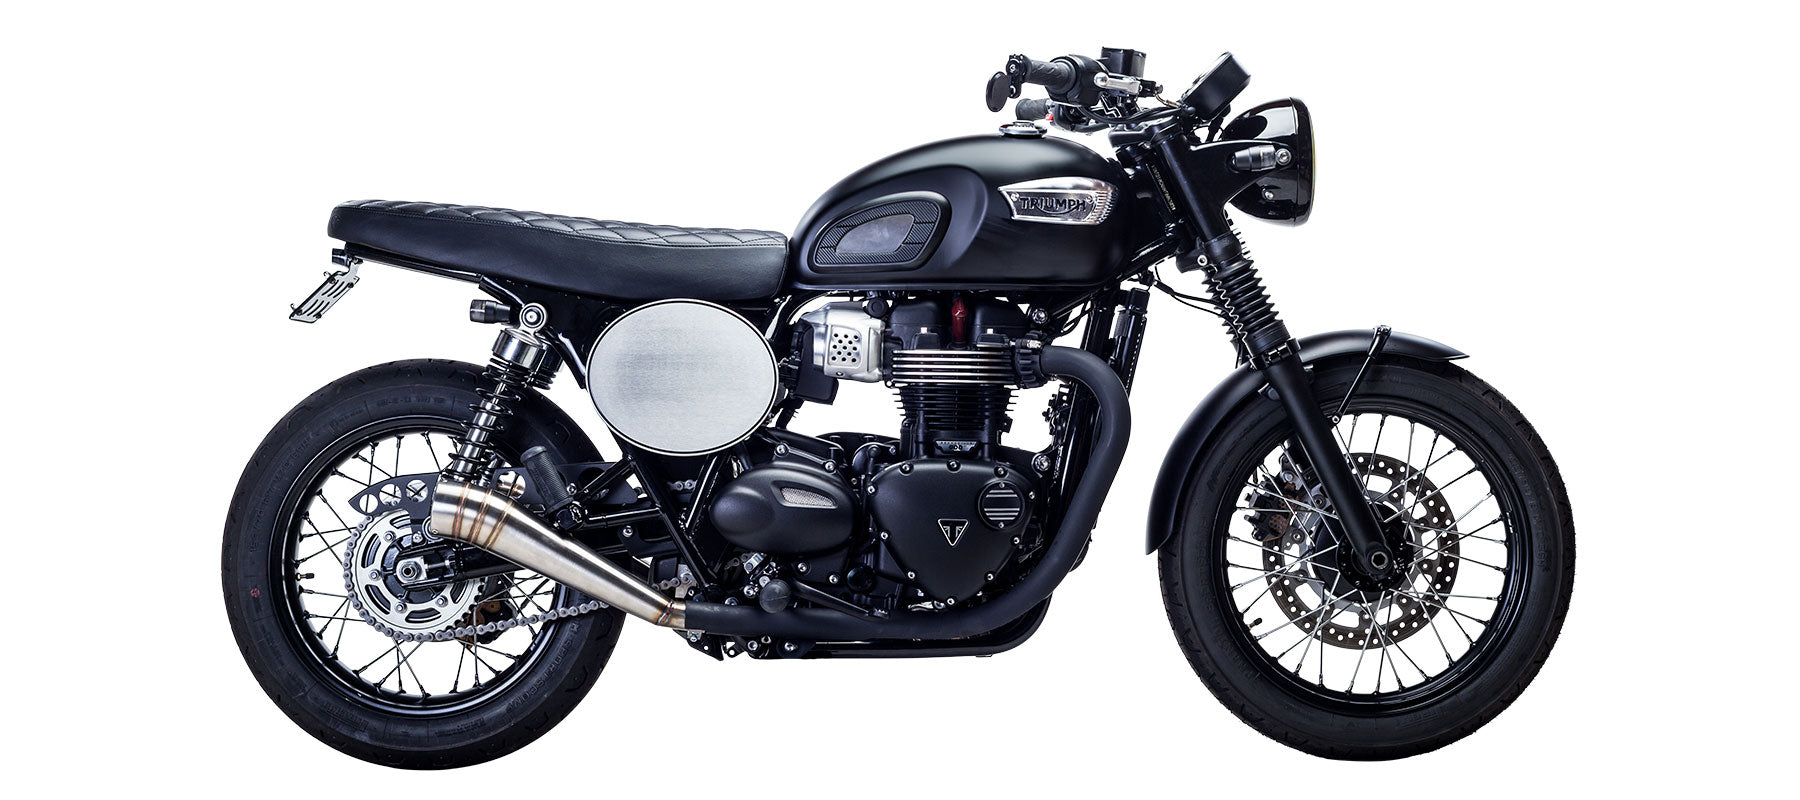 GP Slip On Exhaust for Bonneville T100 by British Customs